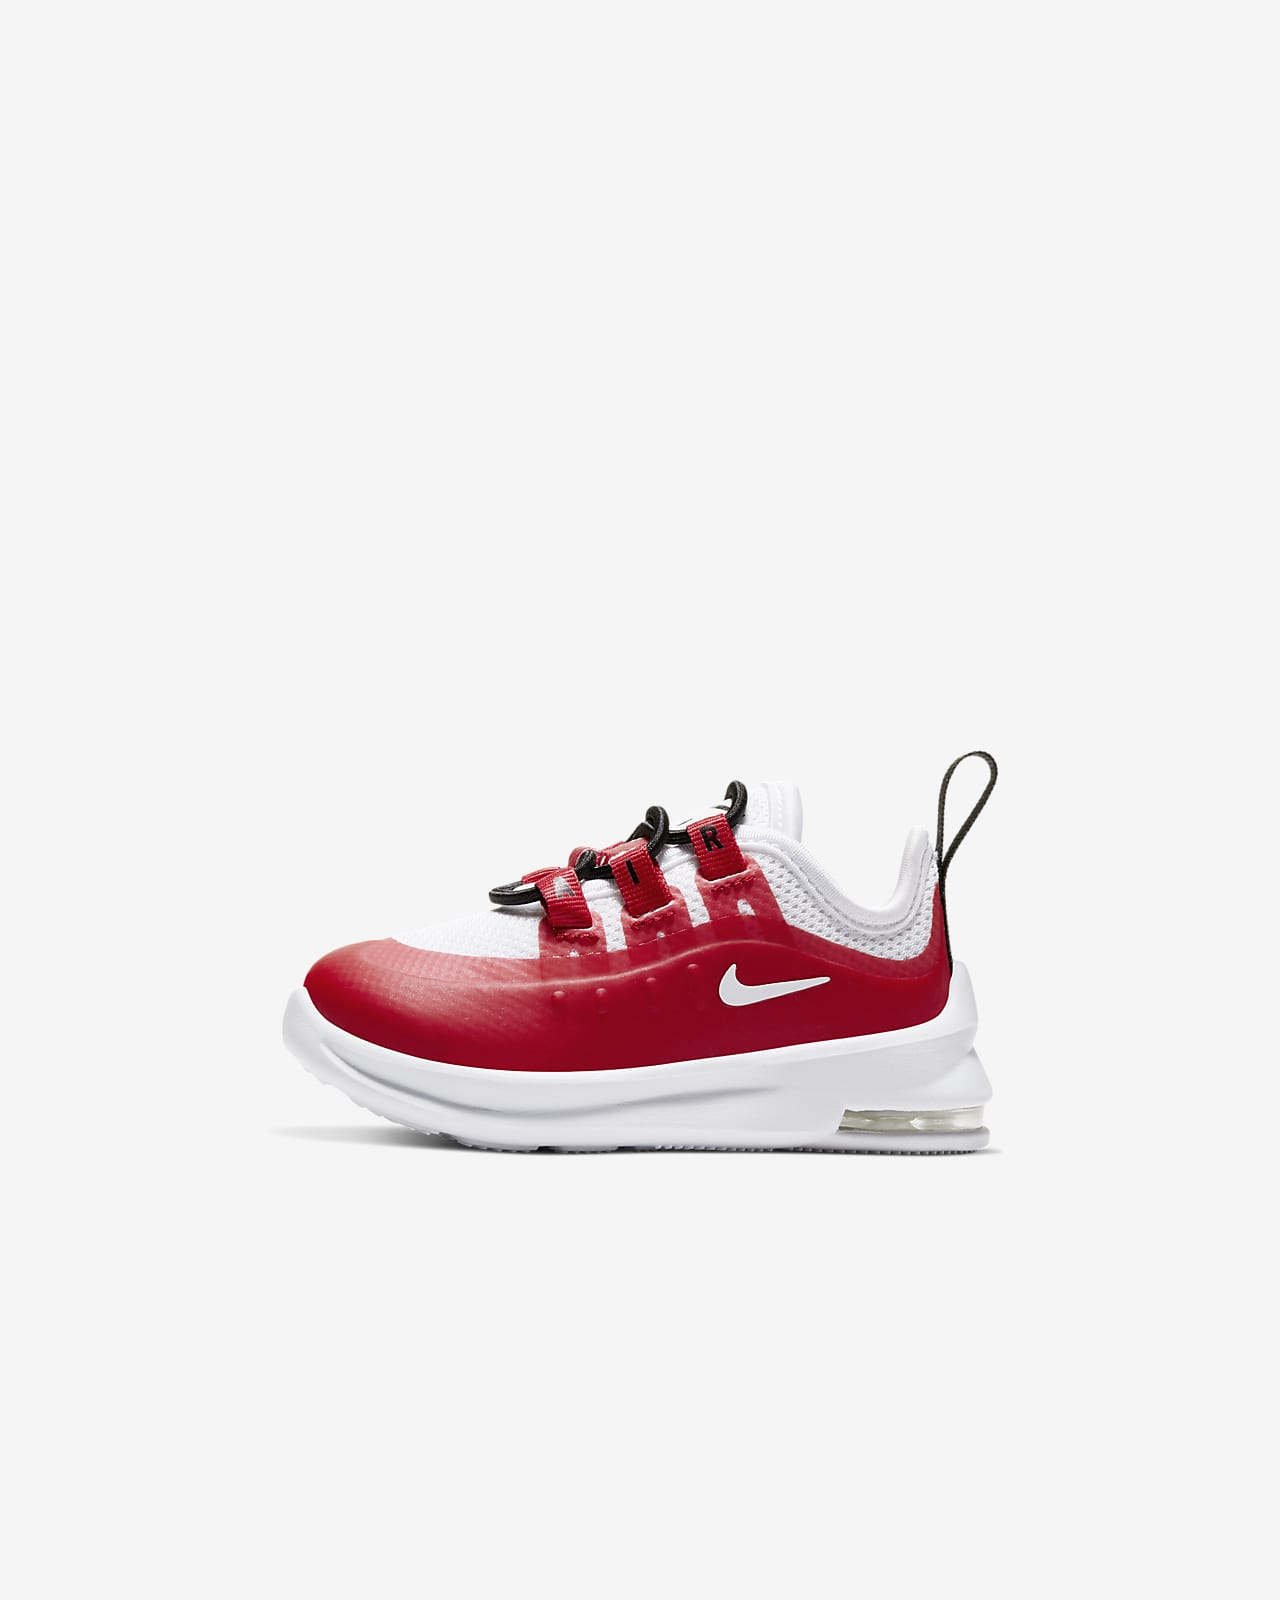 Nike Air Max Axis Baby/Toddler Shoe